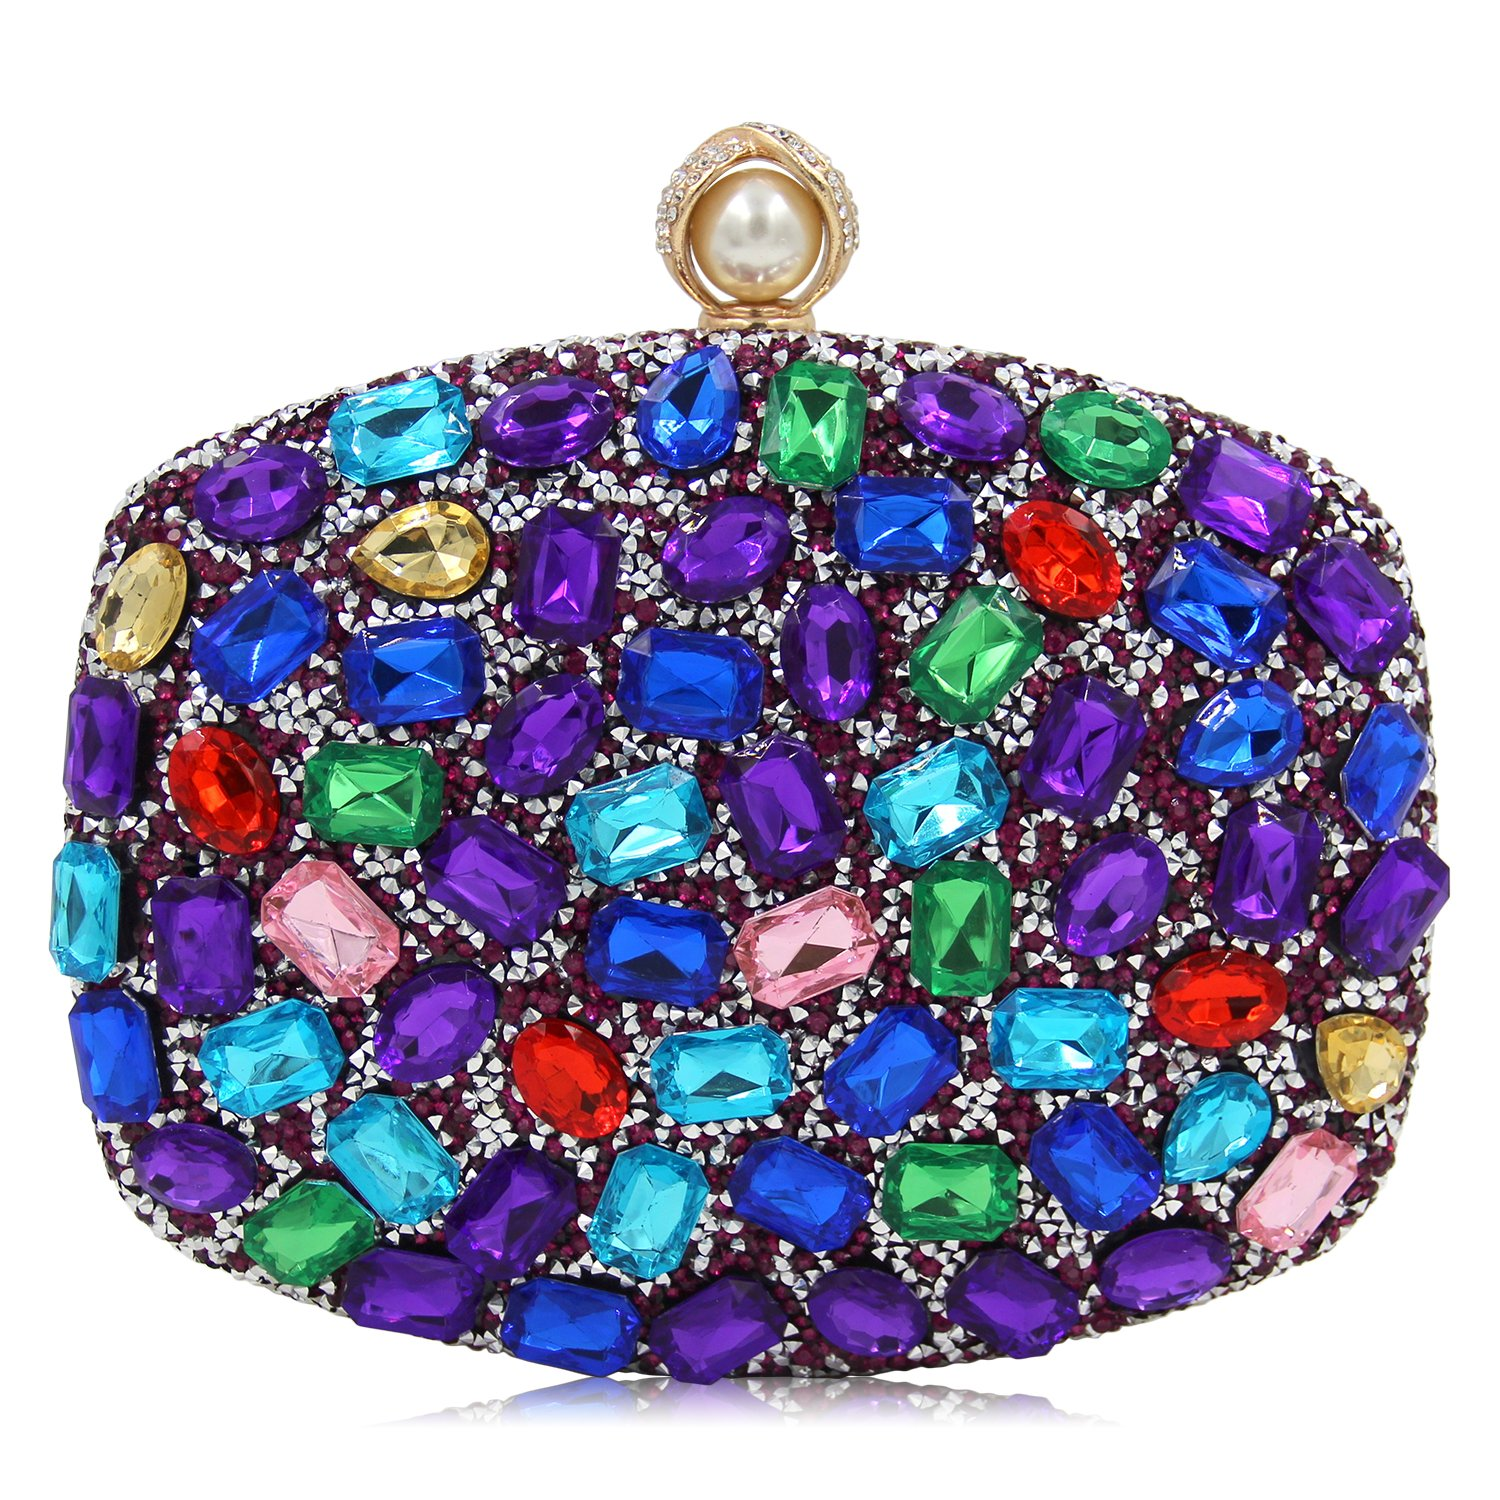 Women Evening Bag Diamond Clutches Crystal Clutch Purse Handbags For Wedding (Multicoloured Purple)